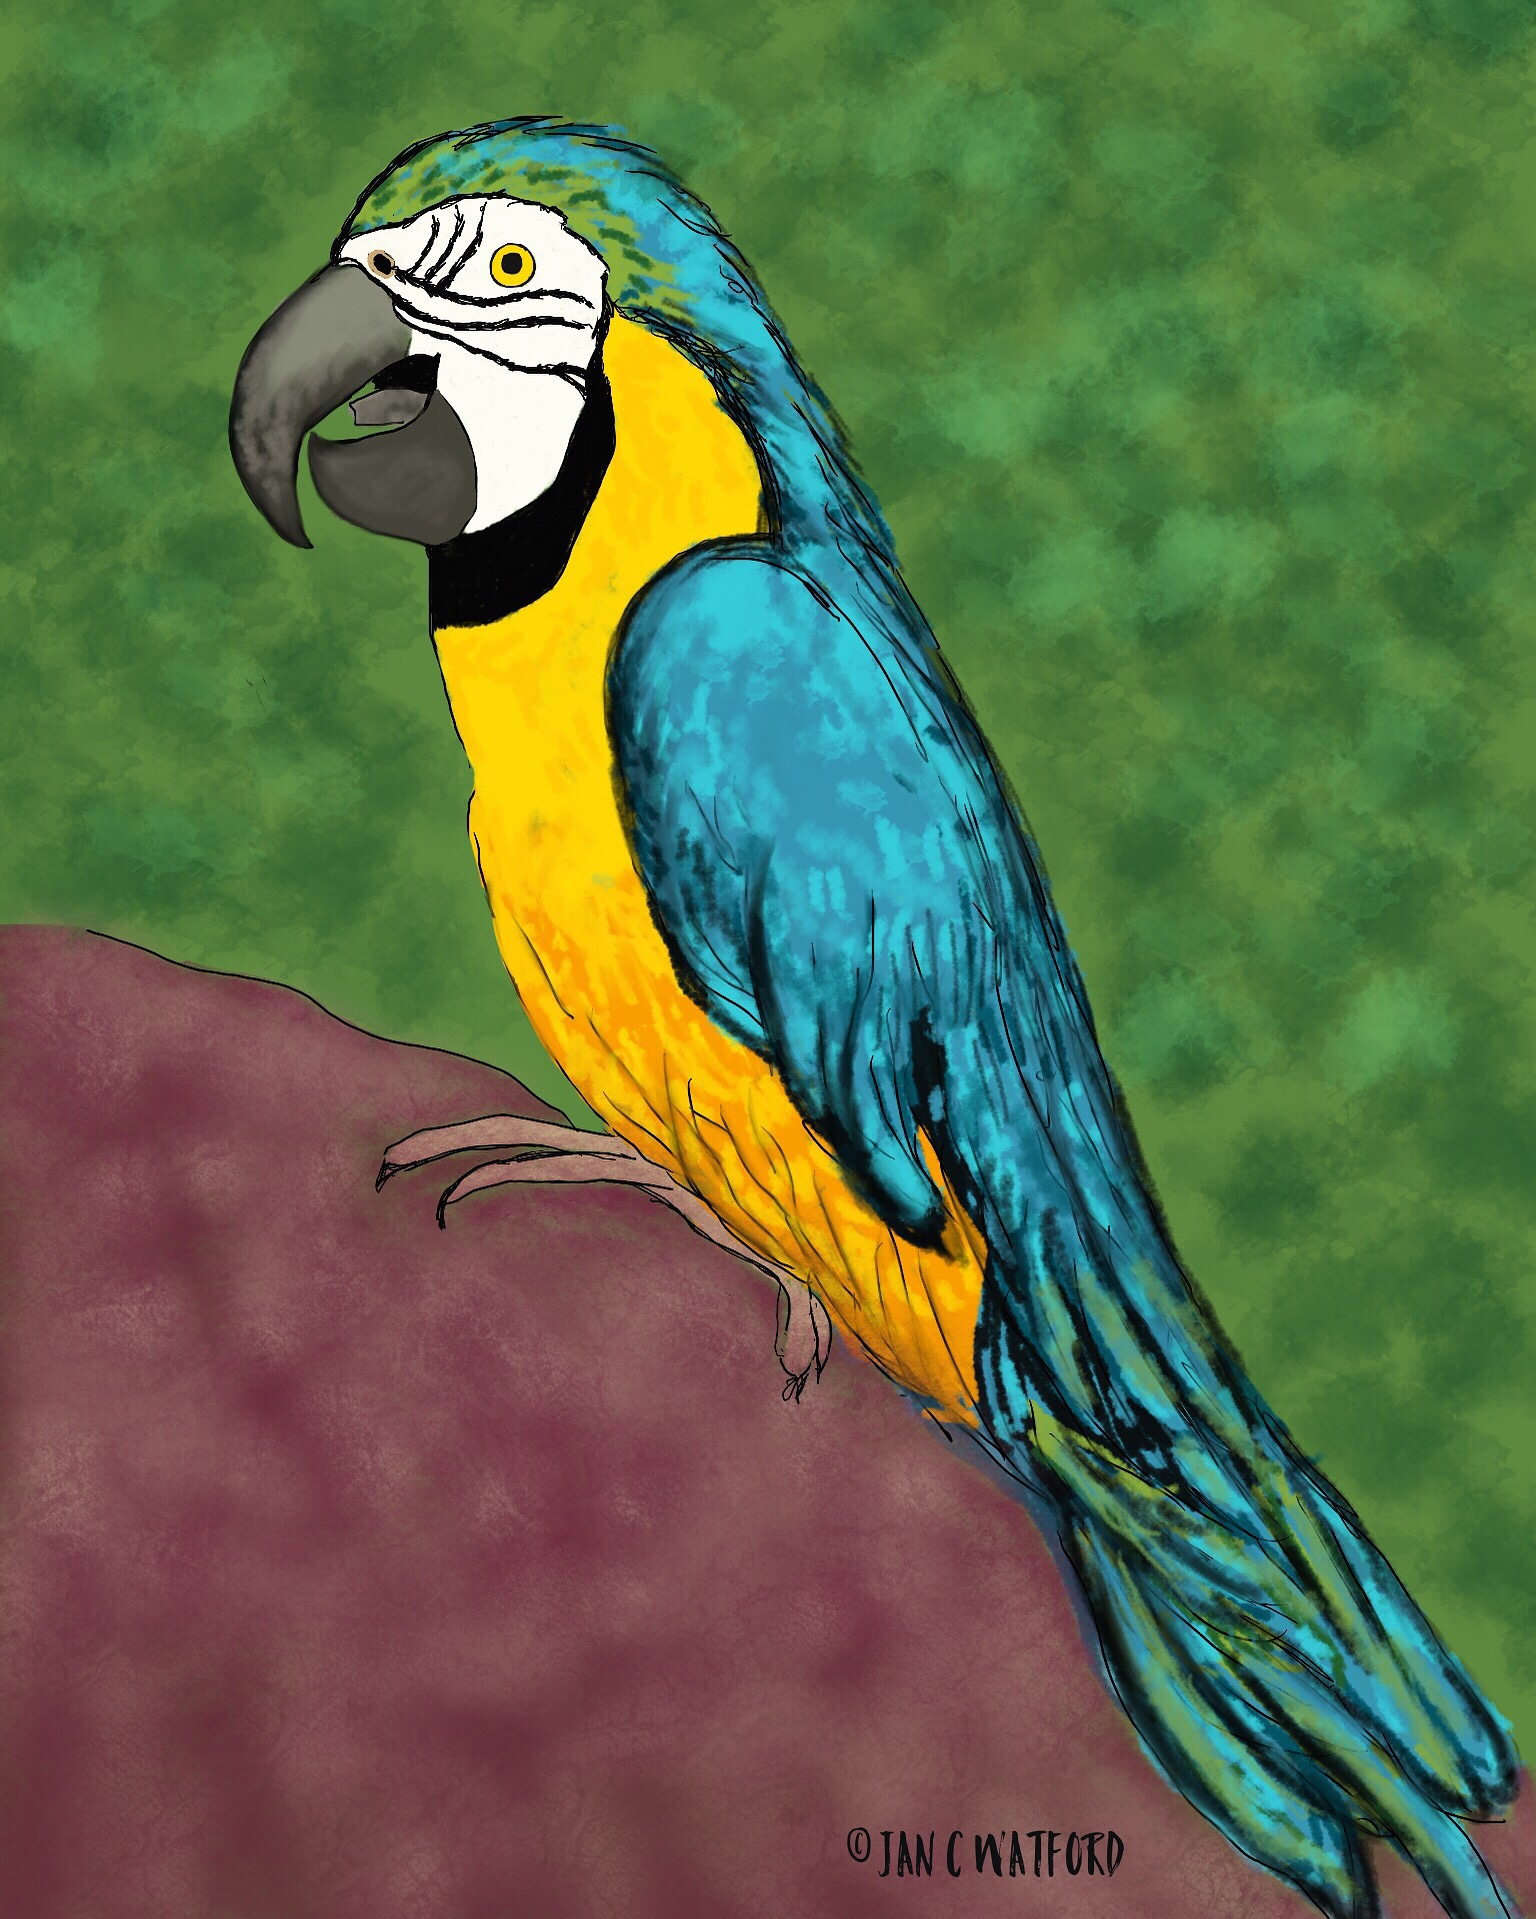 Parrot-Prompt-Realism-#52Week-Illustration-Challenge